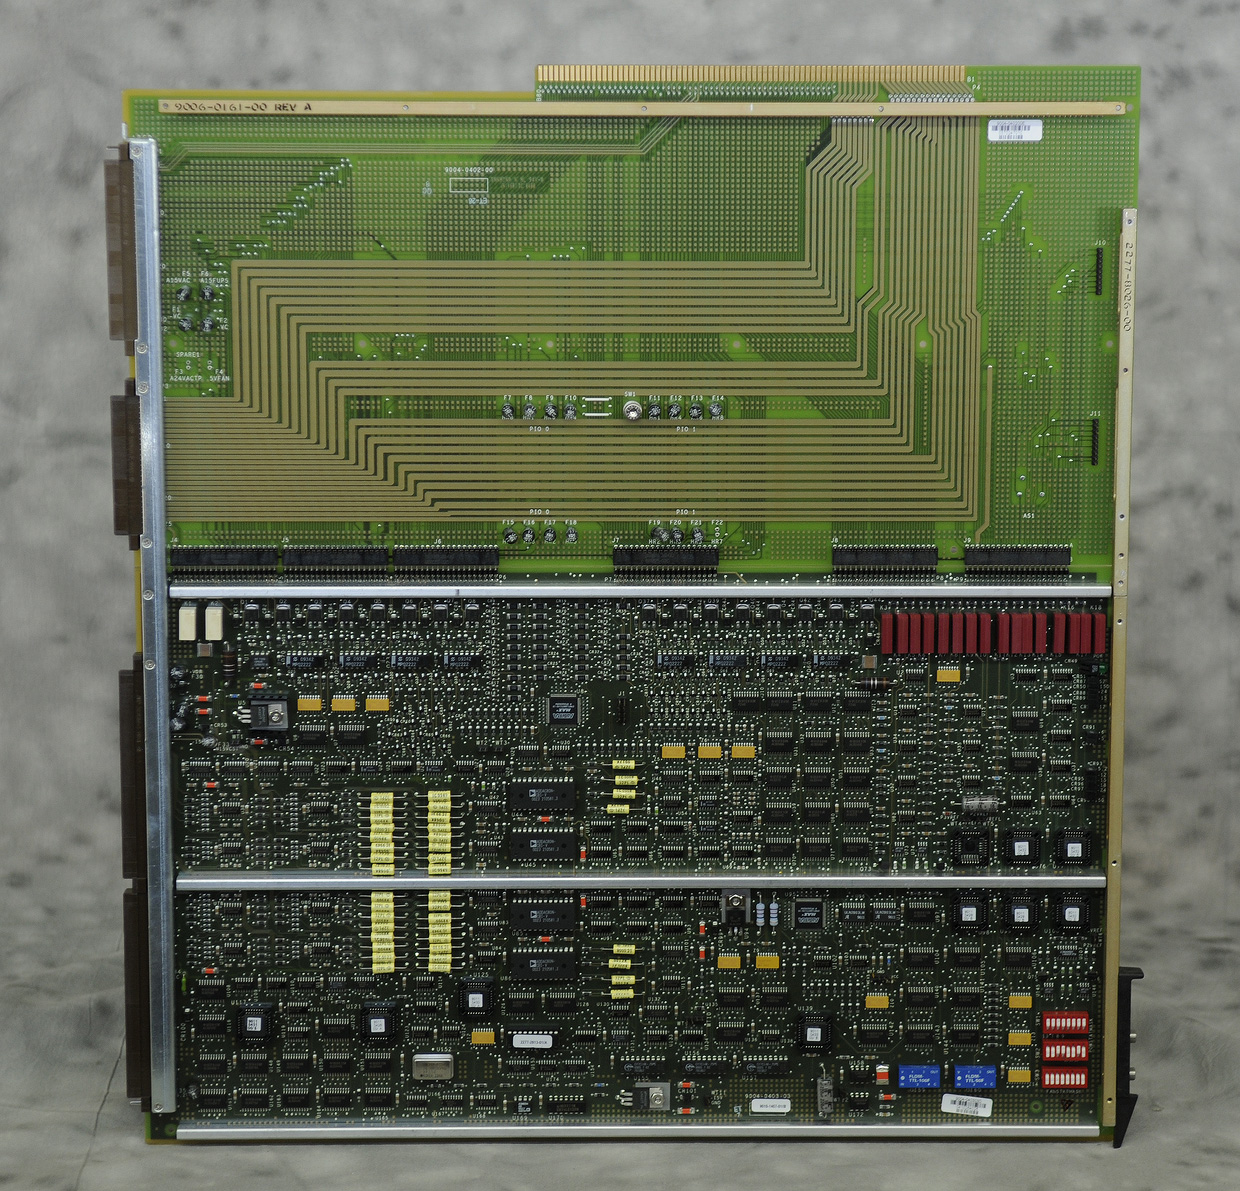 GenRad DS Reference Board - Slot 3